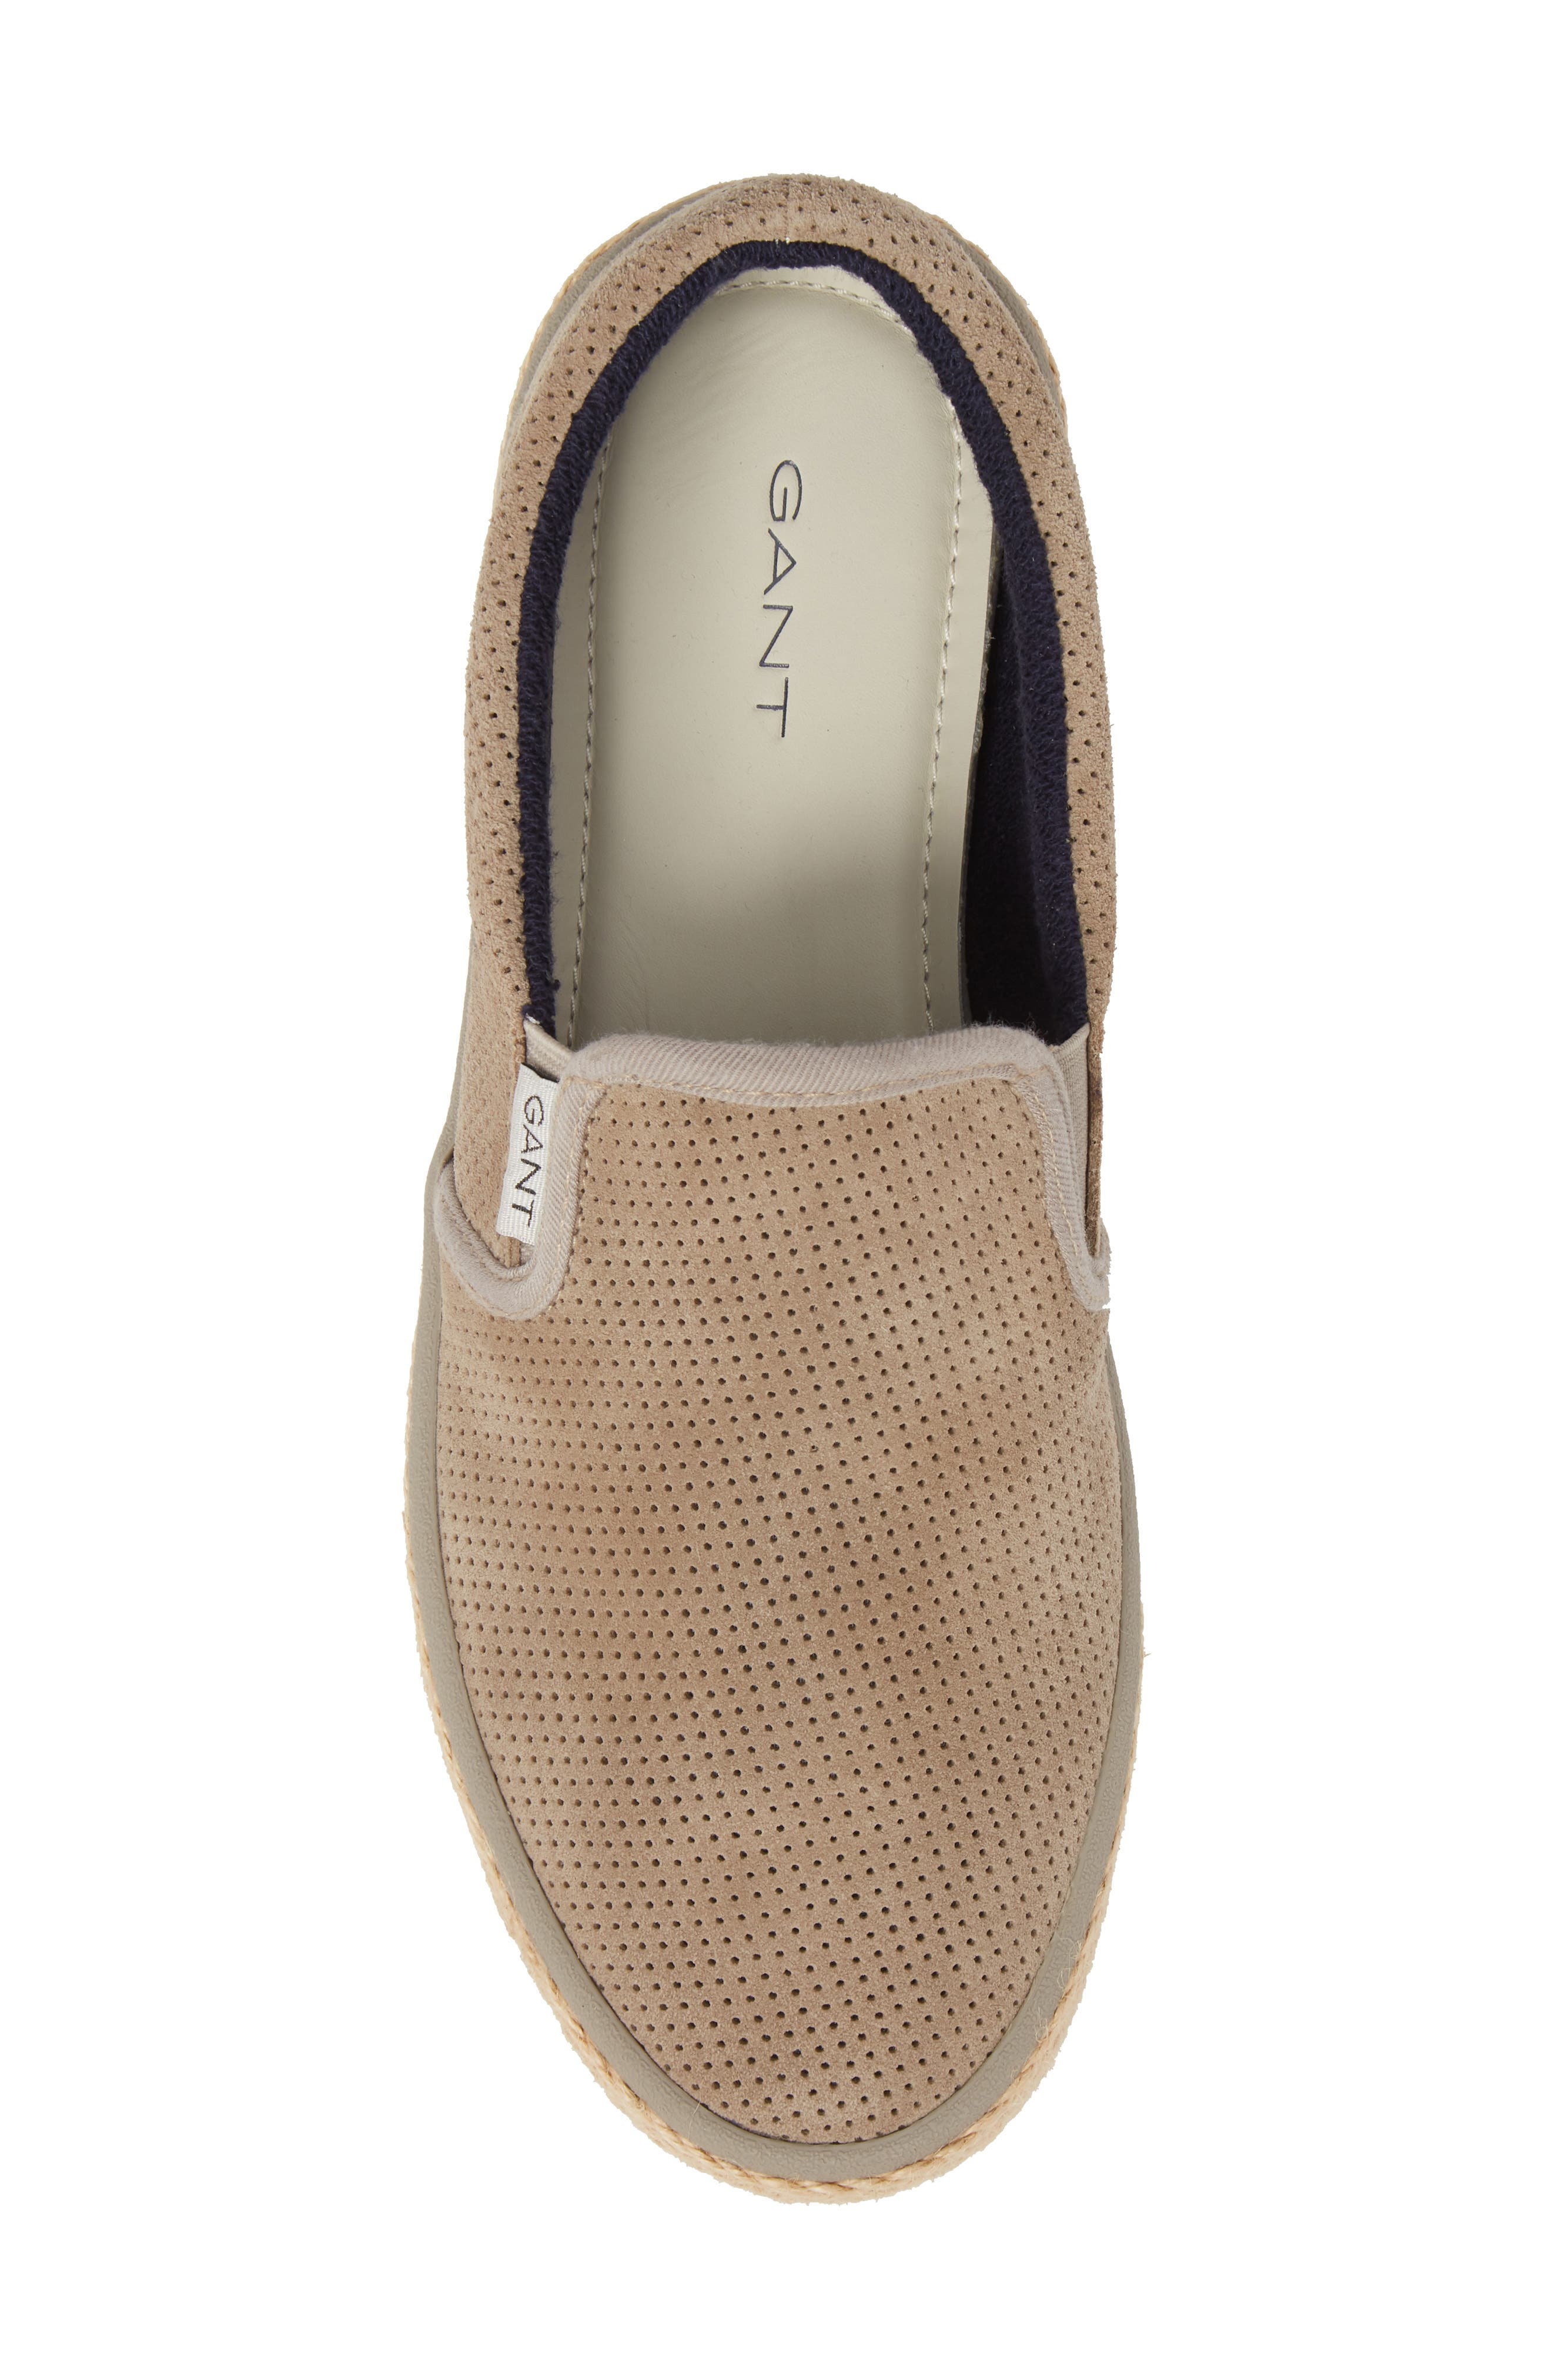 Master Perforated Slip-On Sneaker,                             Alternate thumbnail 5, color,                             Cashew Brown